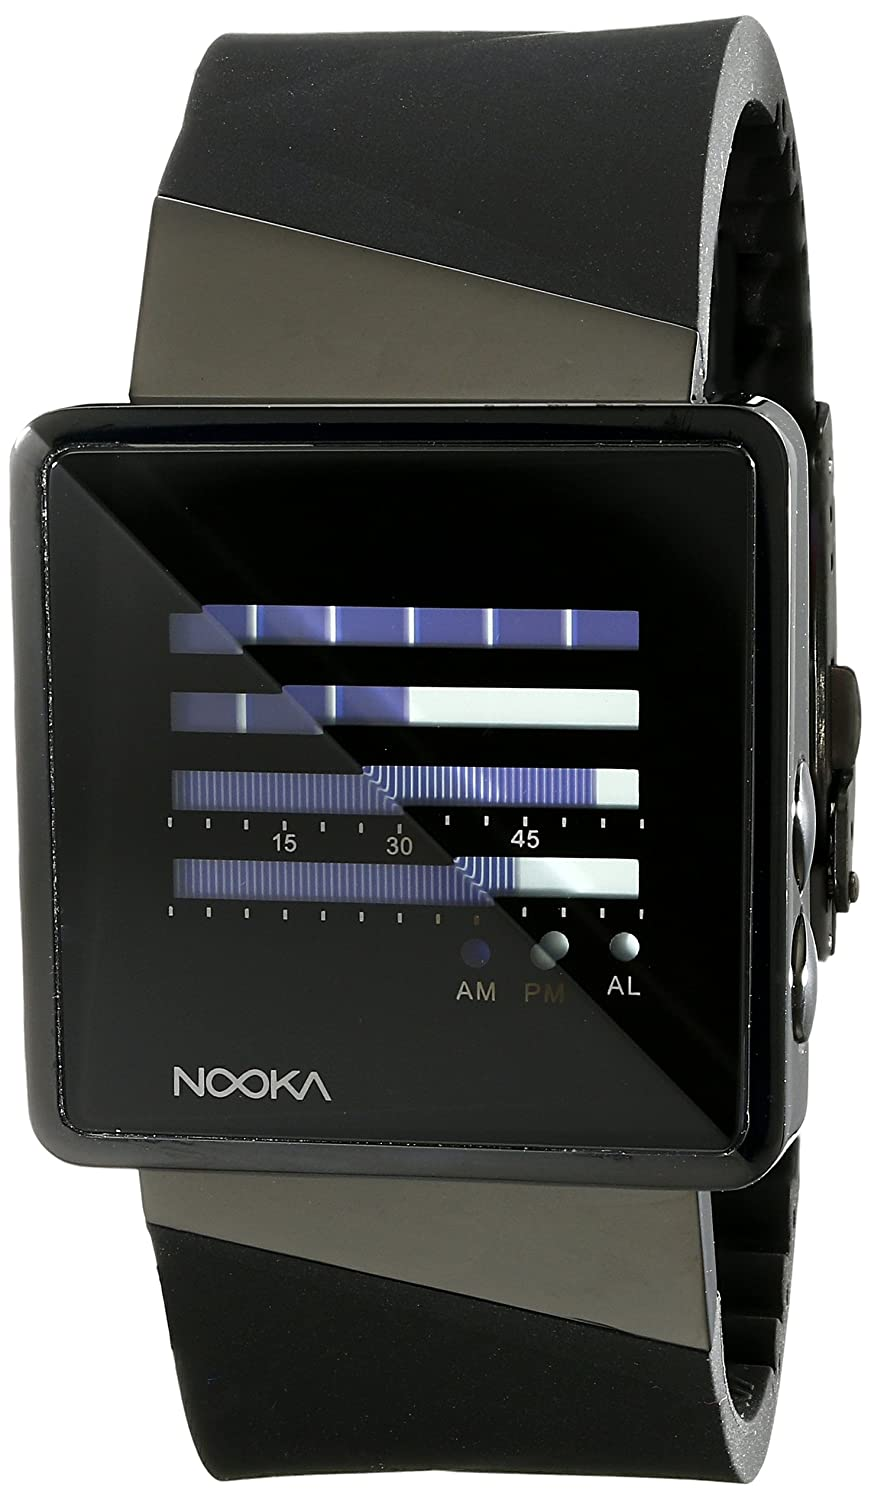 Nooka Zizm Zenh Night Watch - Black